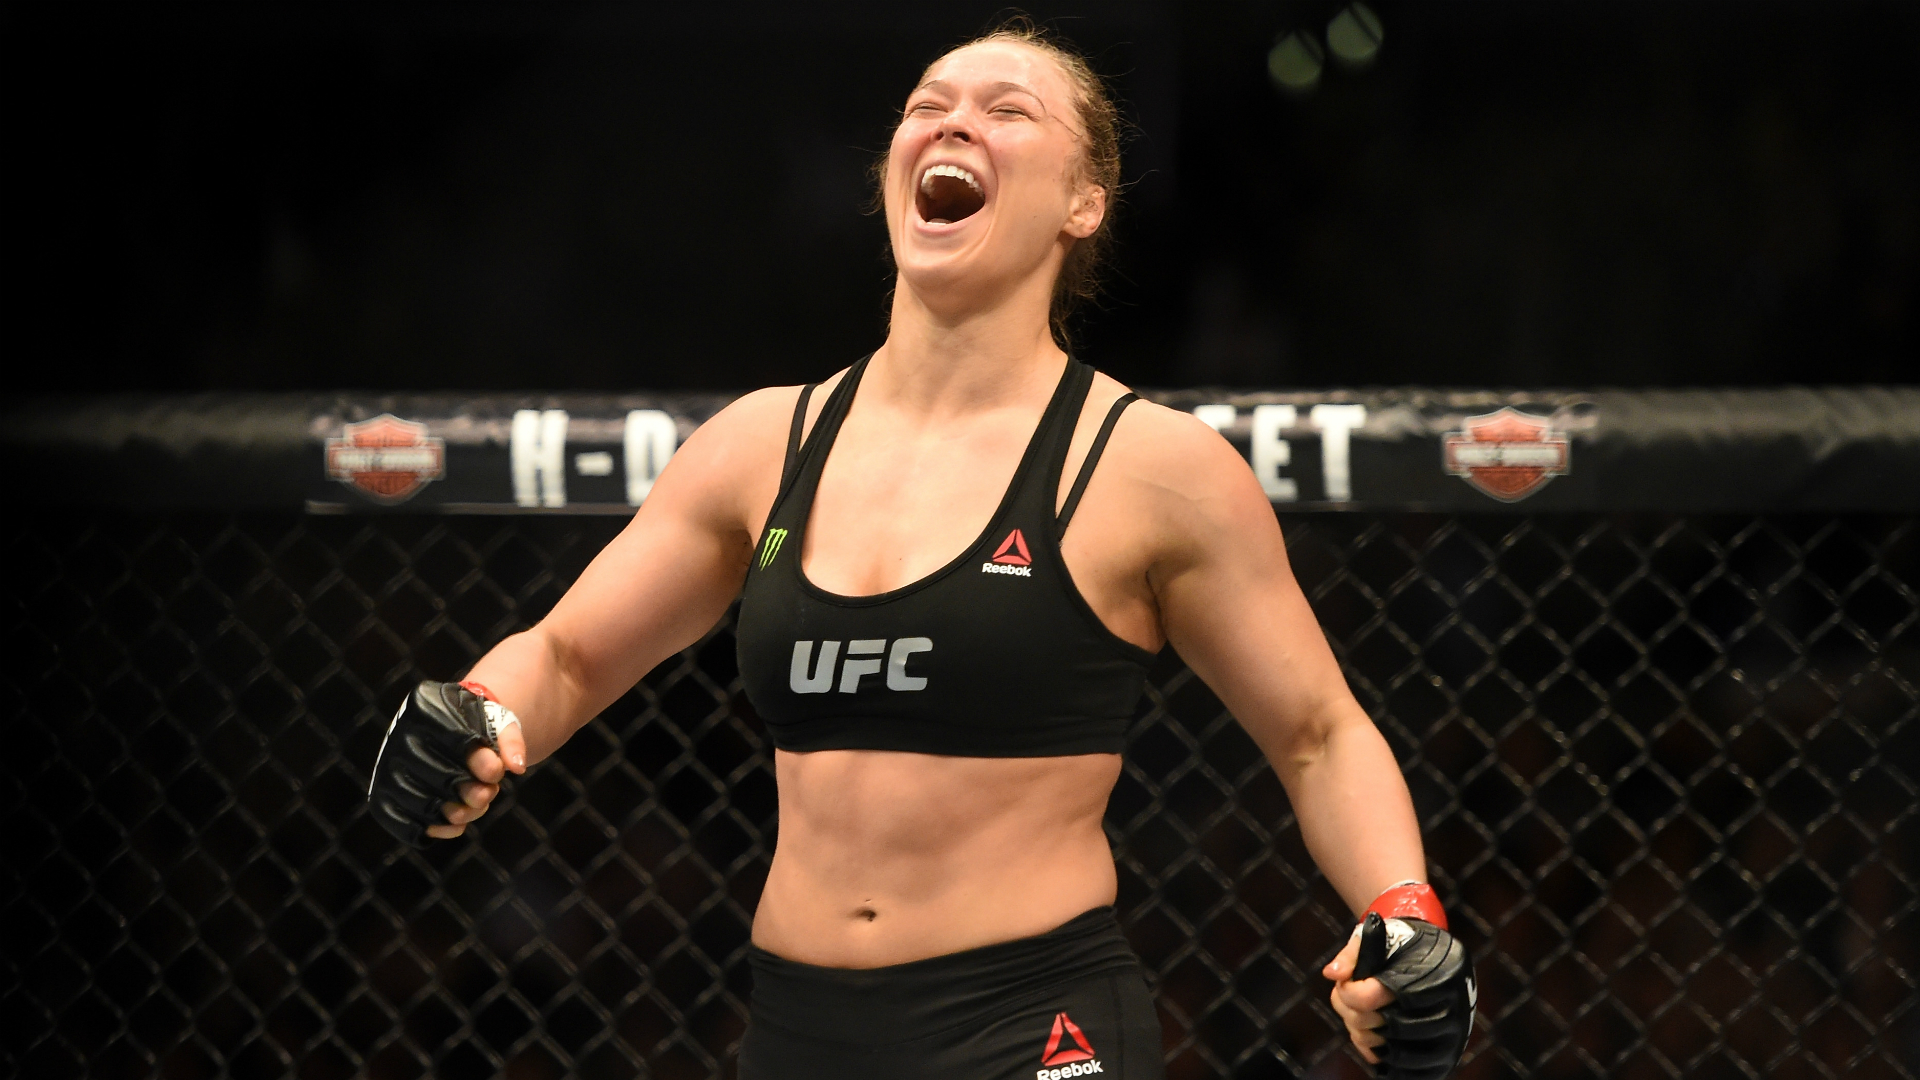 Dana White Doesn't Want Ronda Rousey To Fight Again